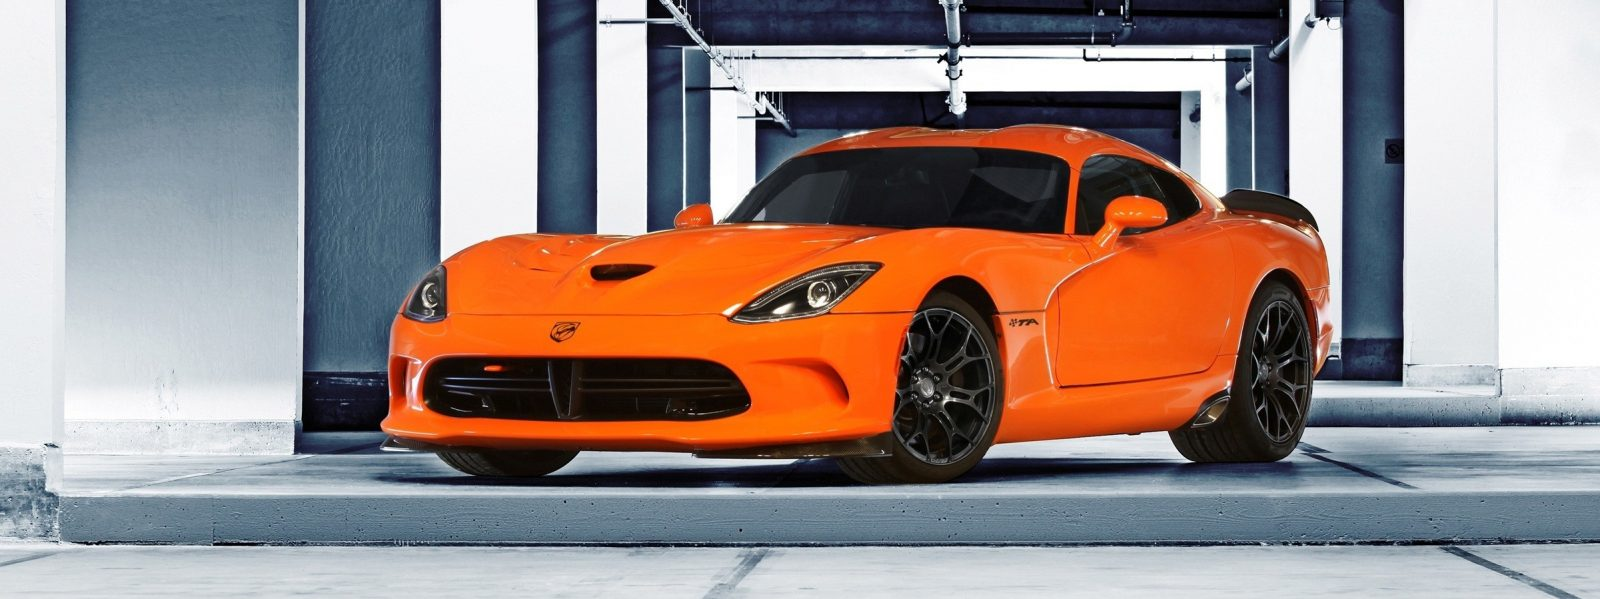 2014 SRT Viper Brings Hot New Styles and Three New Colors29